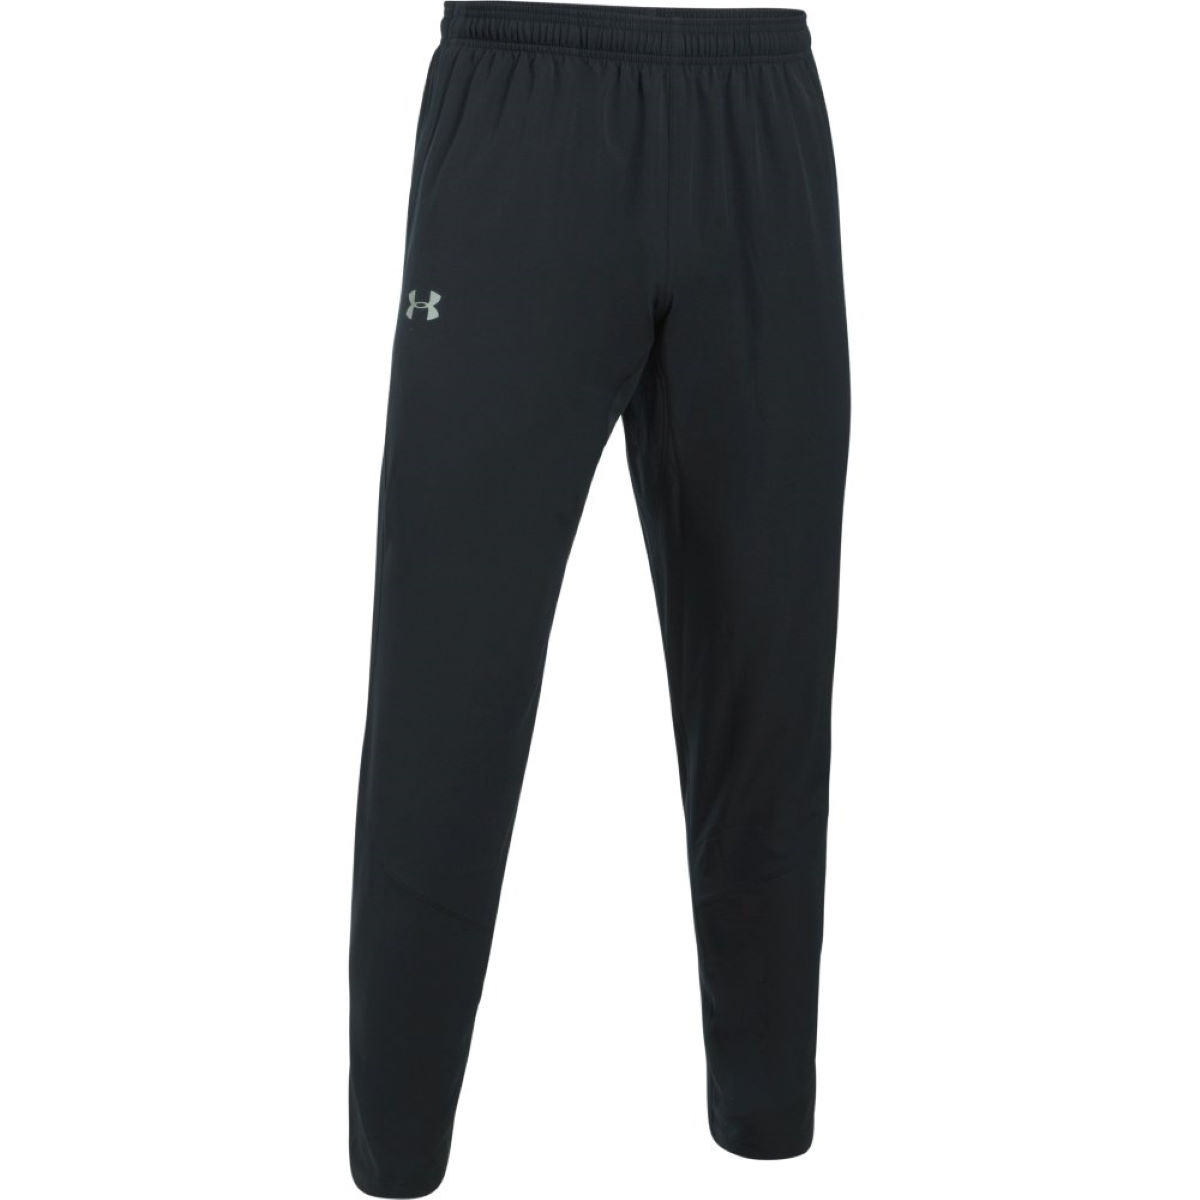 Pantalon Under Armour Out & Back SW (fuselé) - XXL Noir Pantalons